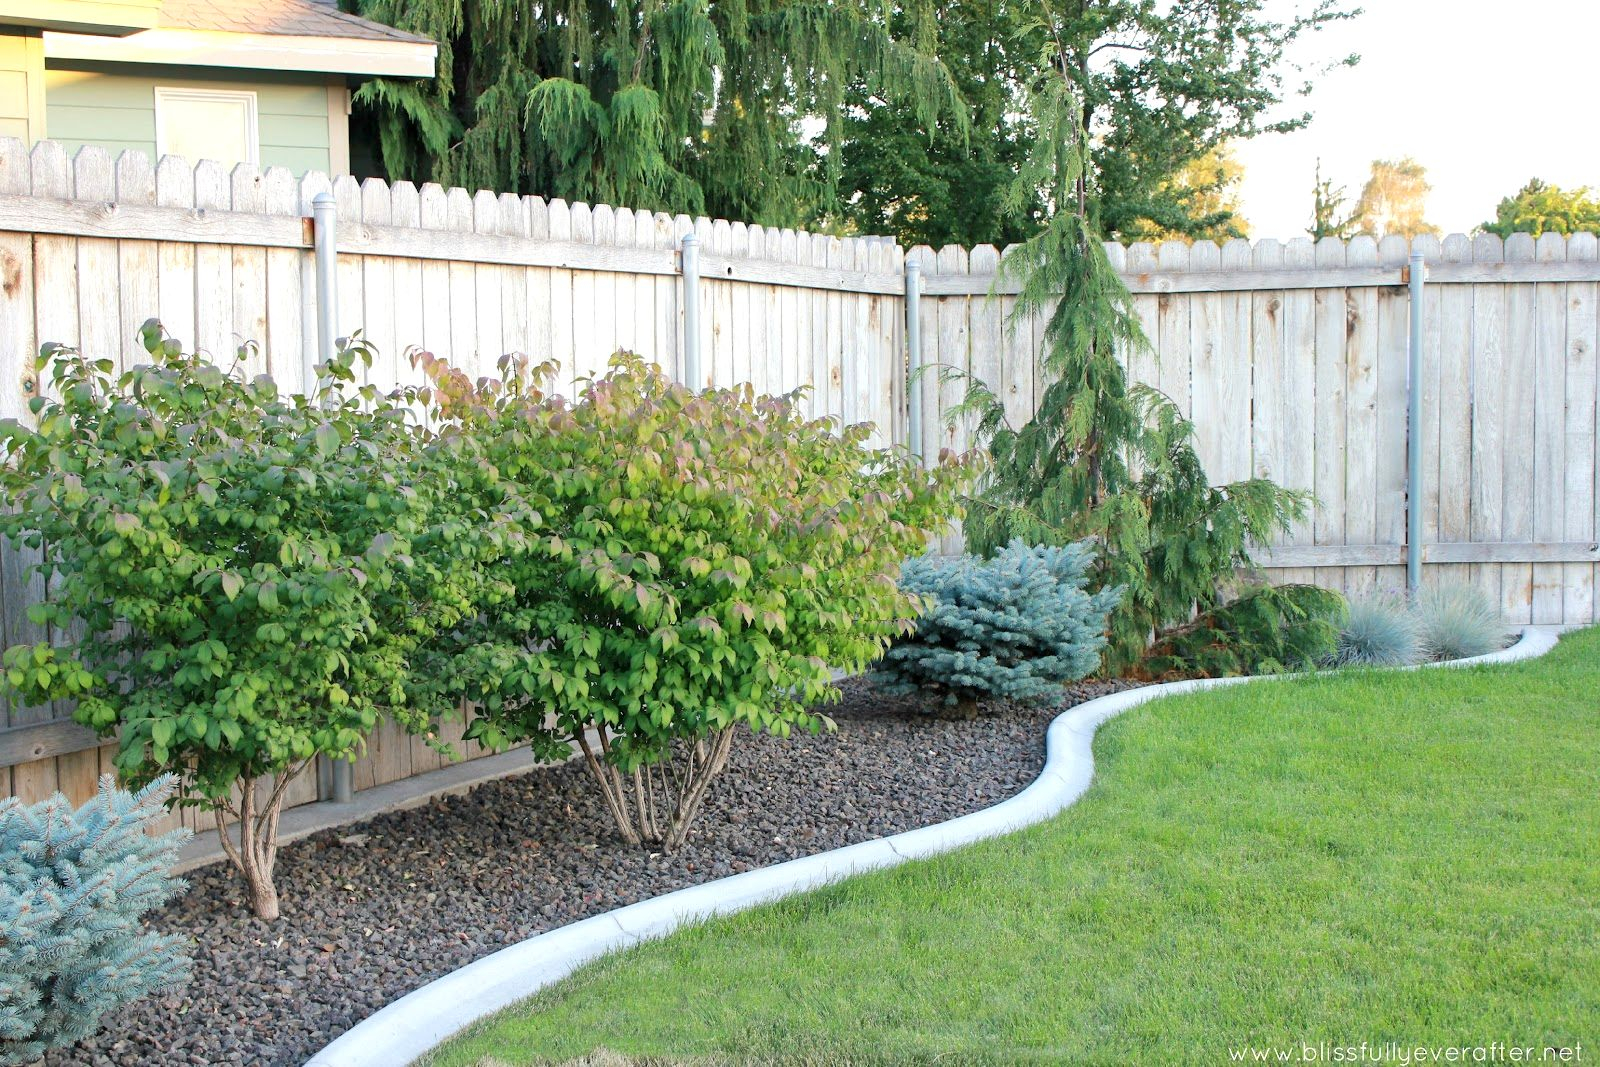 Landscaping Ideas Backyard Cheap The Garden Inspirations Budget for 10 Awesome Concepts of How to Craft Affordable Backyard Landscaping Ideas